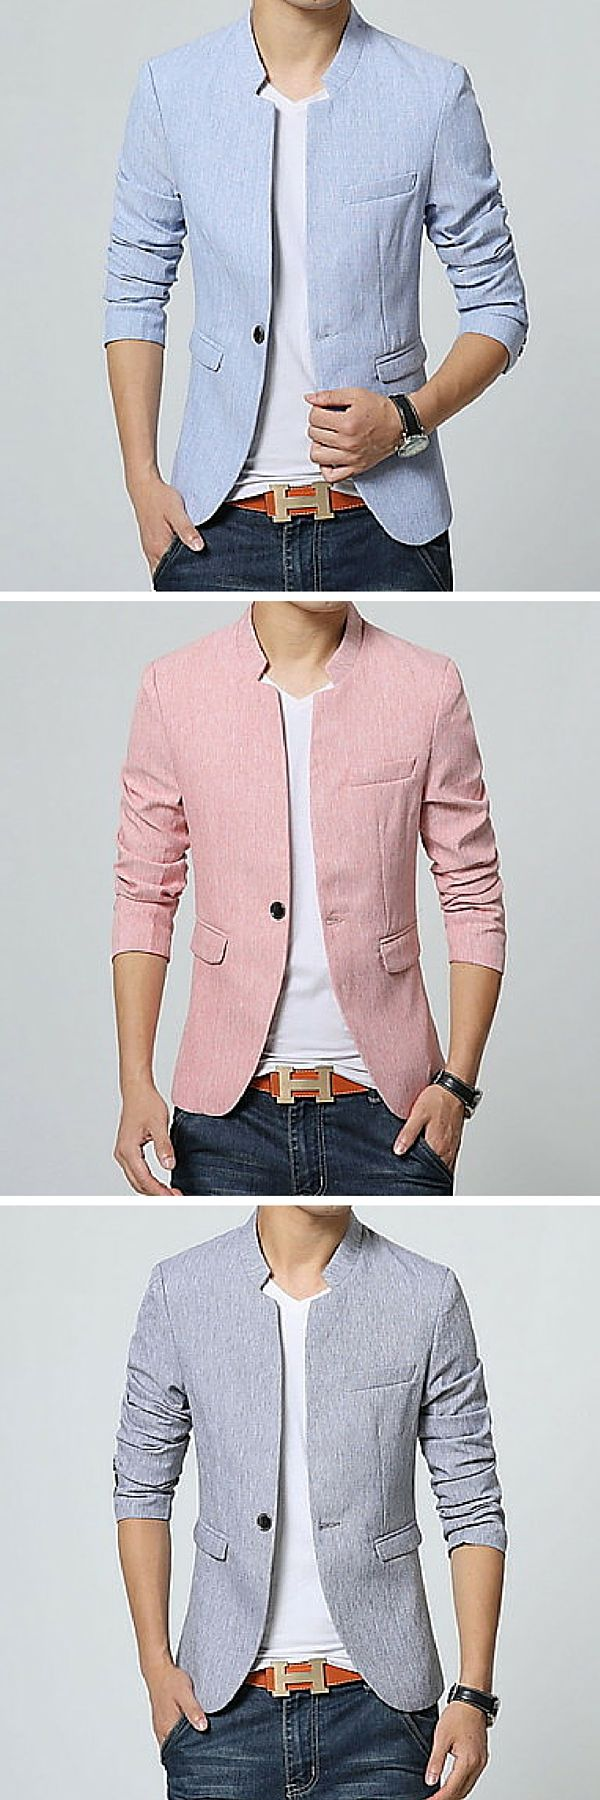 A cotton blazer for spring. This is an excellent choice for the modern man who wants to look put together without looking stuffy. It can be worn with jeans or slacks.